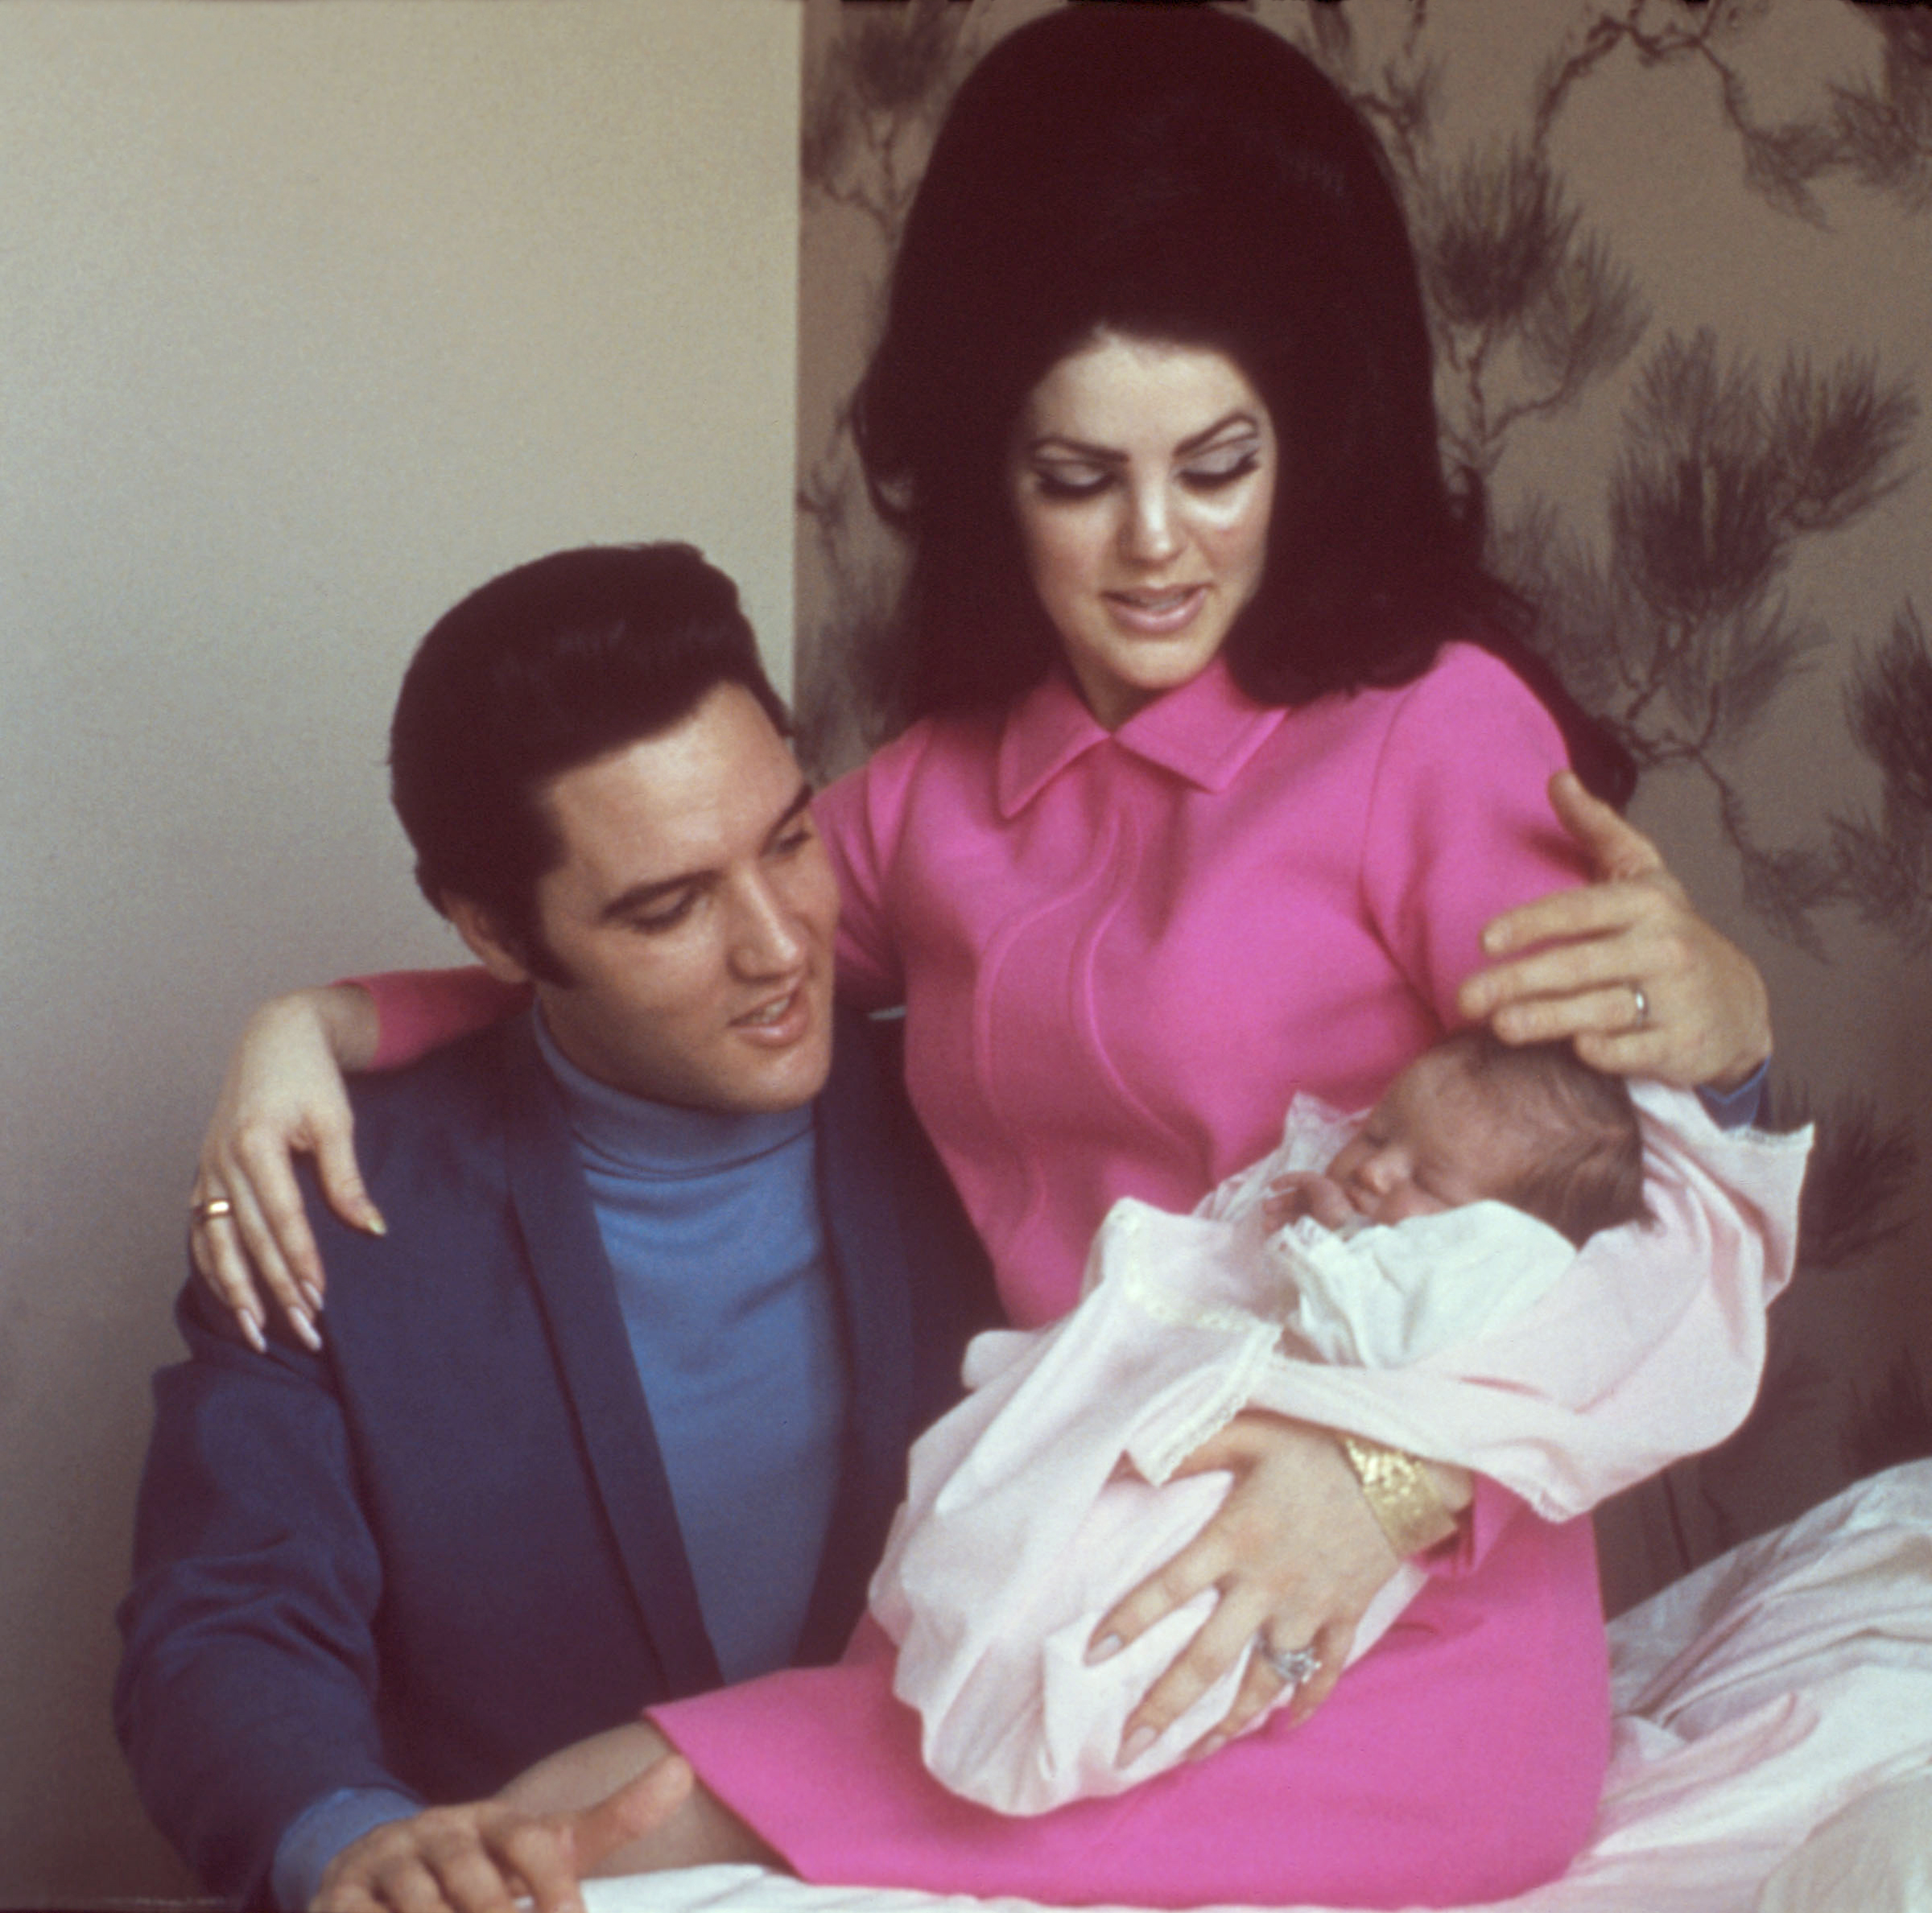 Rock and roll singer Elvis Presley with his wife Priscilla Beaulieu Presley and their 4 day old daughter Lisa Marie Presley on February 5, 1968 in Memphis, Tennessee.